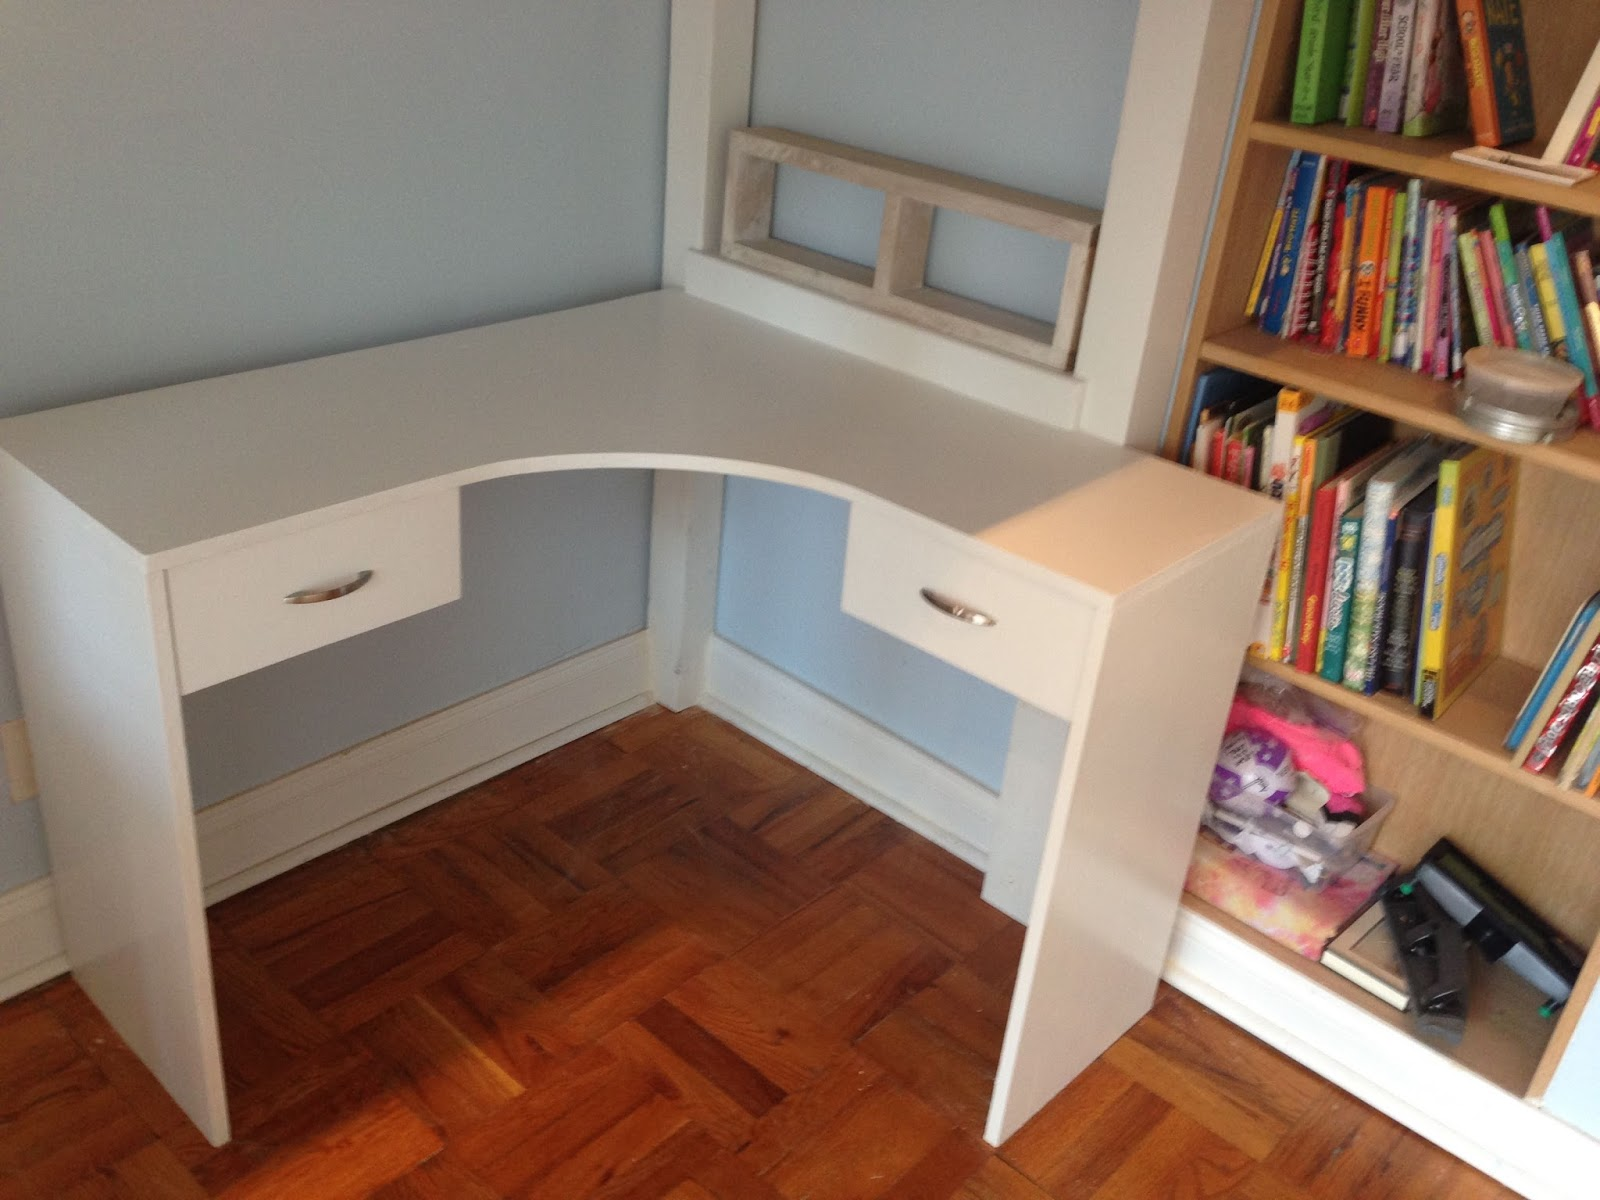 ana projects desk cubby white img bookshelf combo corner cubbybookshelfcorner furniture diy